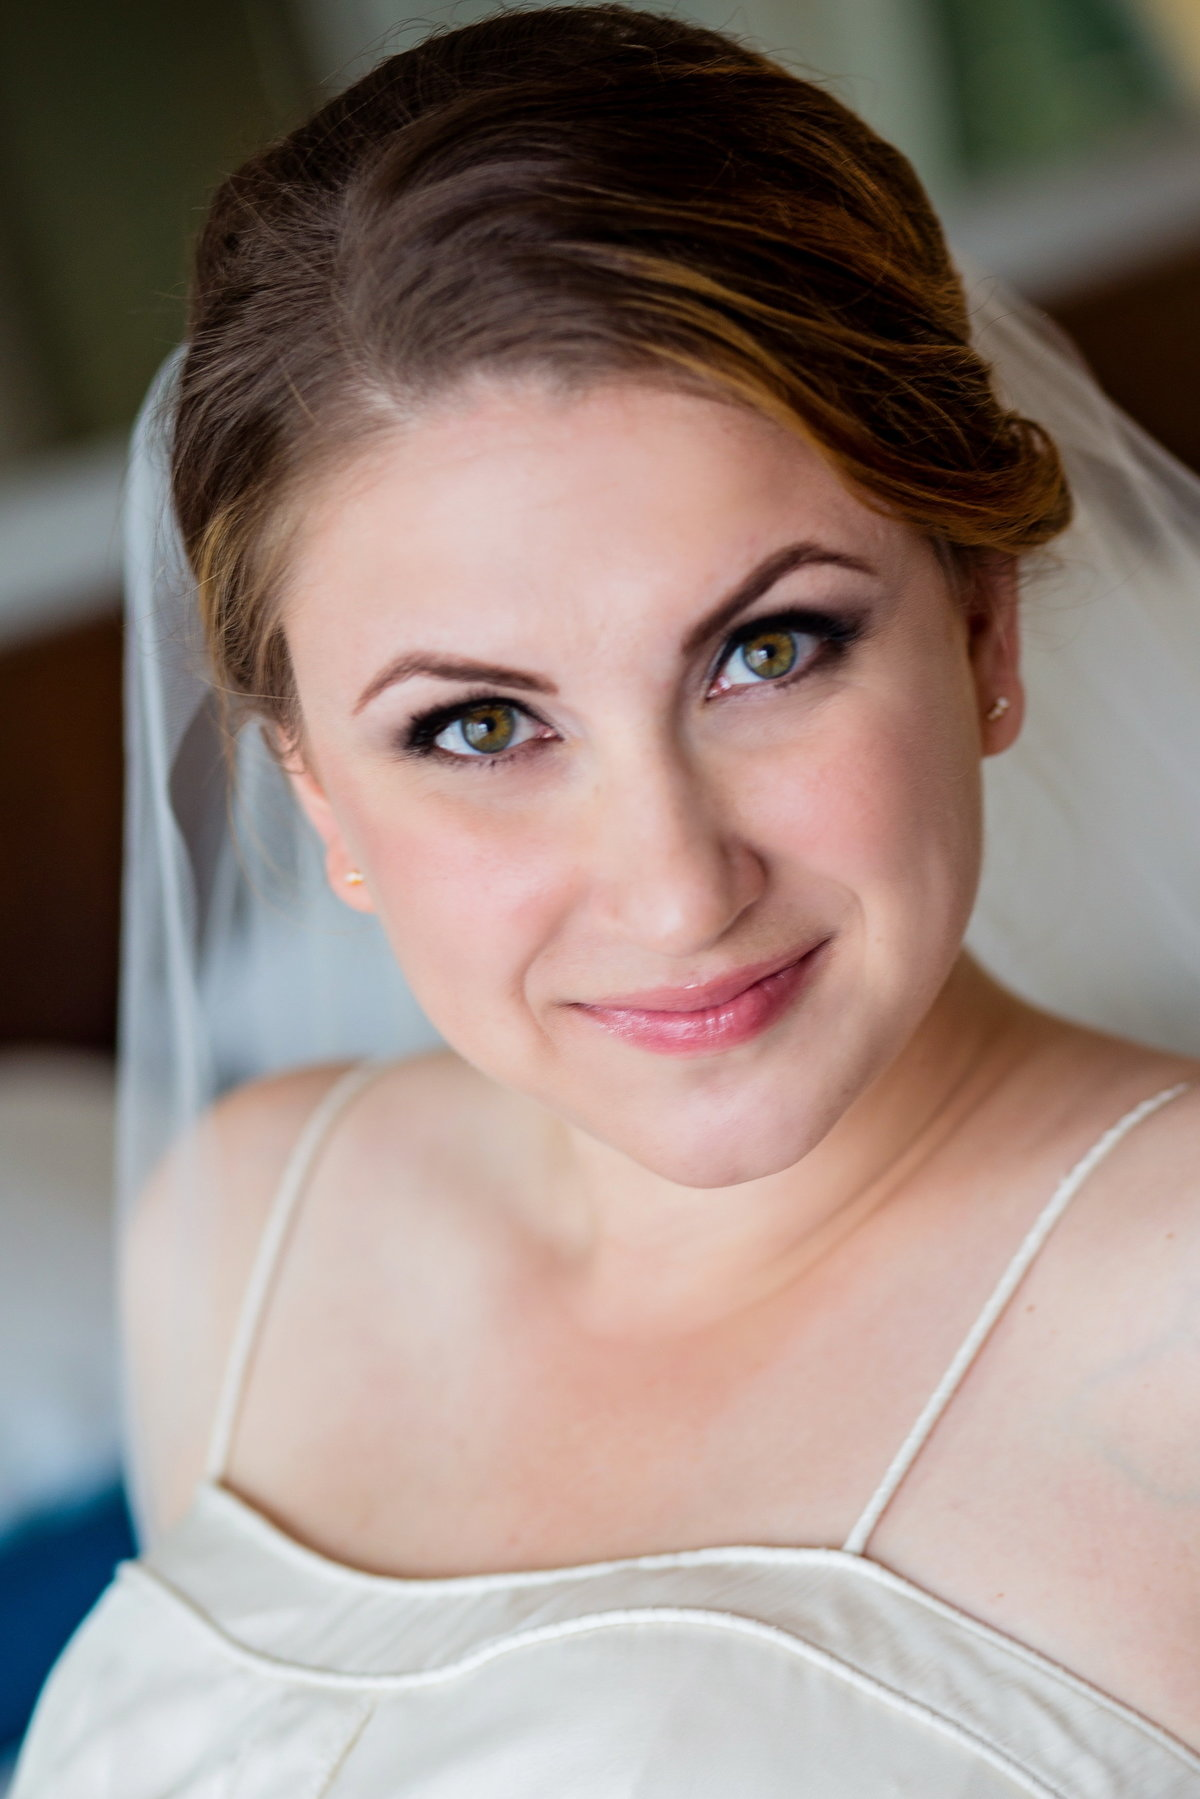 Close up portrait of bride, detailing makeup and top of dress